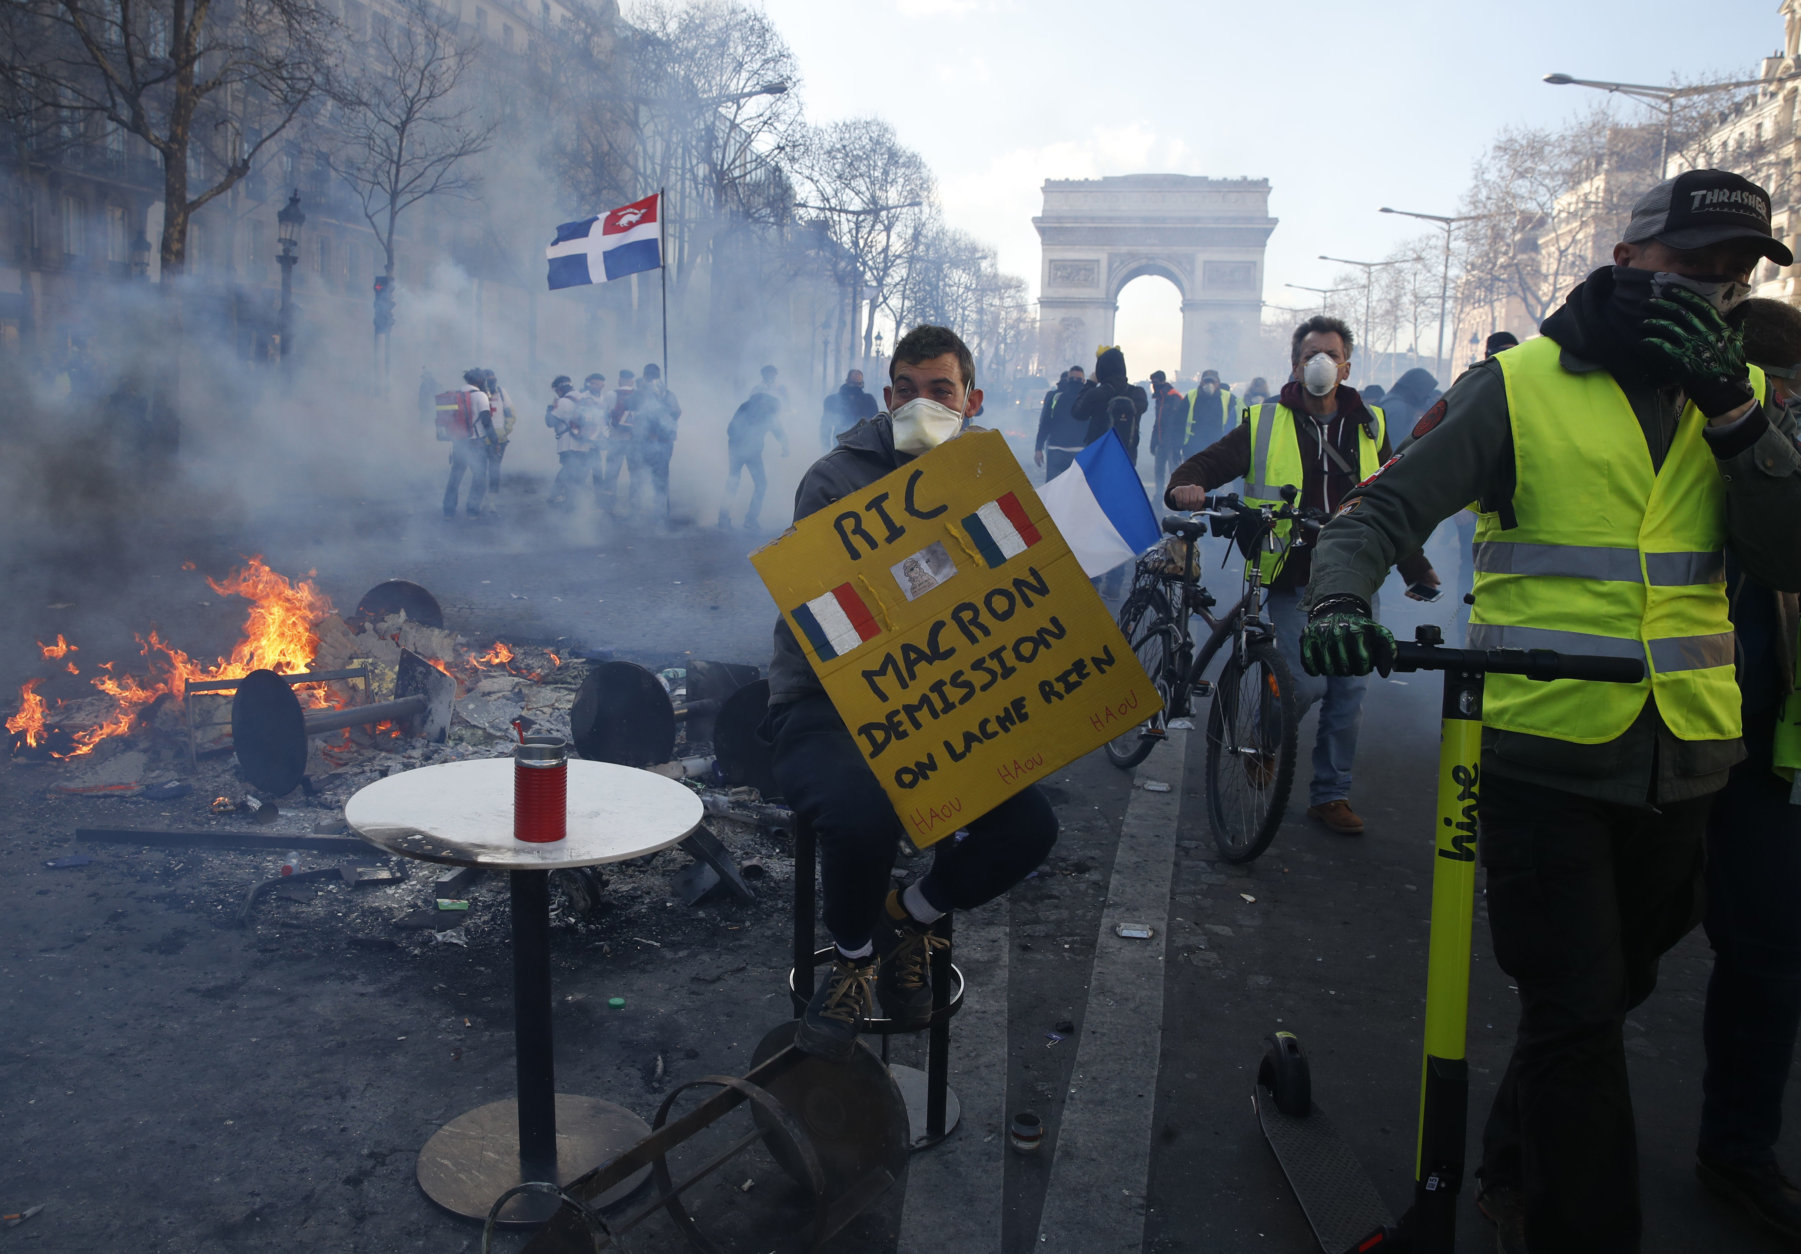 Yellow vests demonstrators walks down the Champs Elysees avenue Saturday, March 16, 2019 in Paris. Paris police say more than 100 people have been arrested amid rioting in the French capital by yellow vest protesters and clashes with police. They set life-threatening fires, smashed up luxury stores and clashed with police firing tear gas and water cannon. Poster reads: Macron resigns. (AP Photo/Christophe Ena)